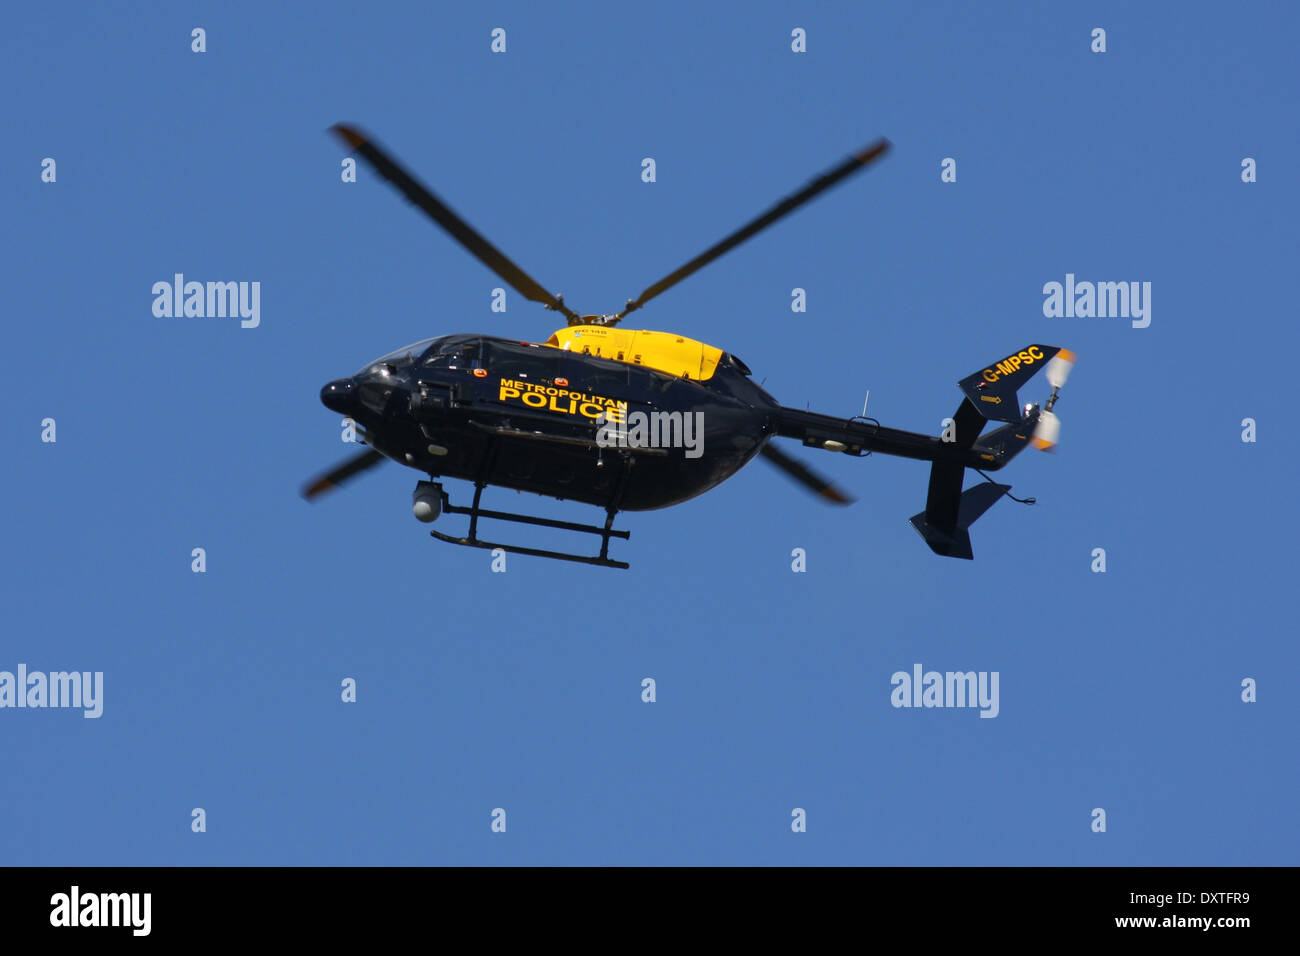 METROPOLITAN POLICE AIR SUPPORT UNIT EUROCOPTER EC145 - Stock Image